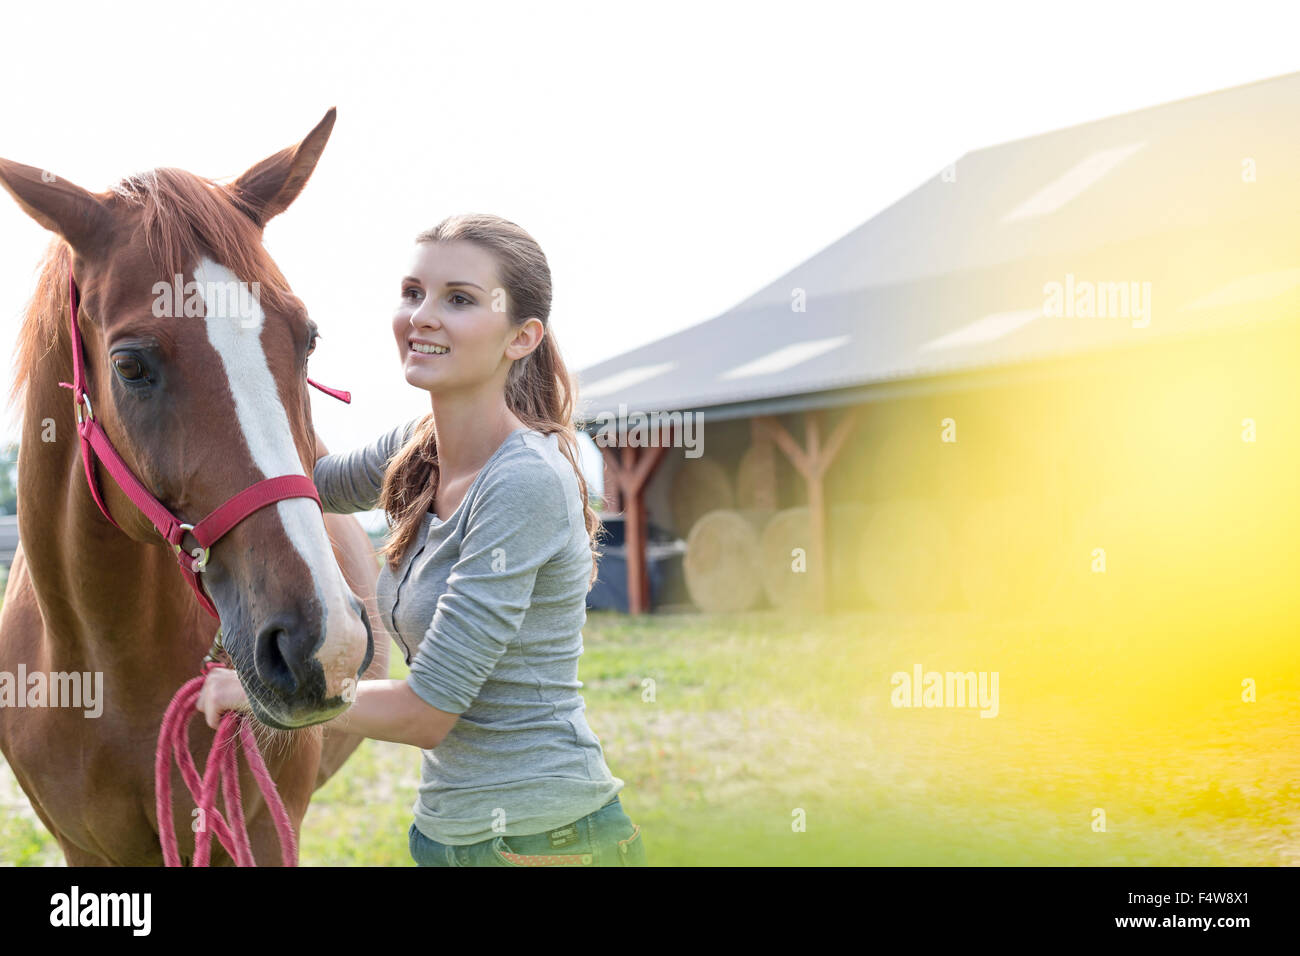 Smiling woman with horse outside rural barn - Stock Image